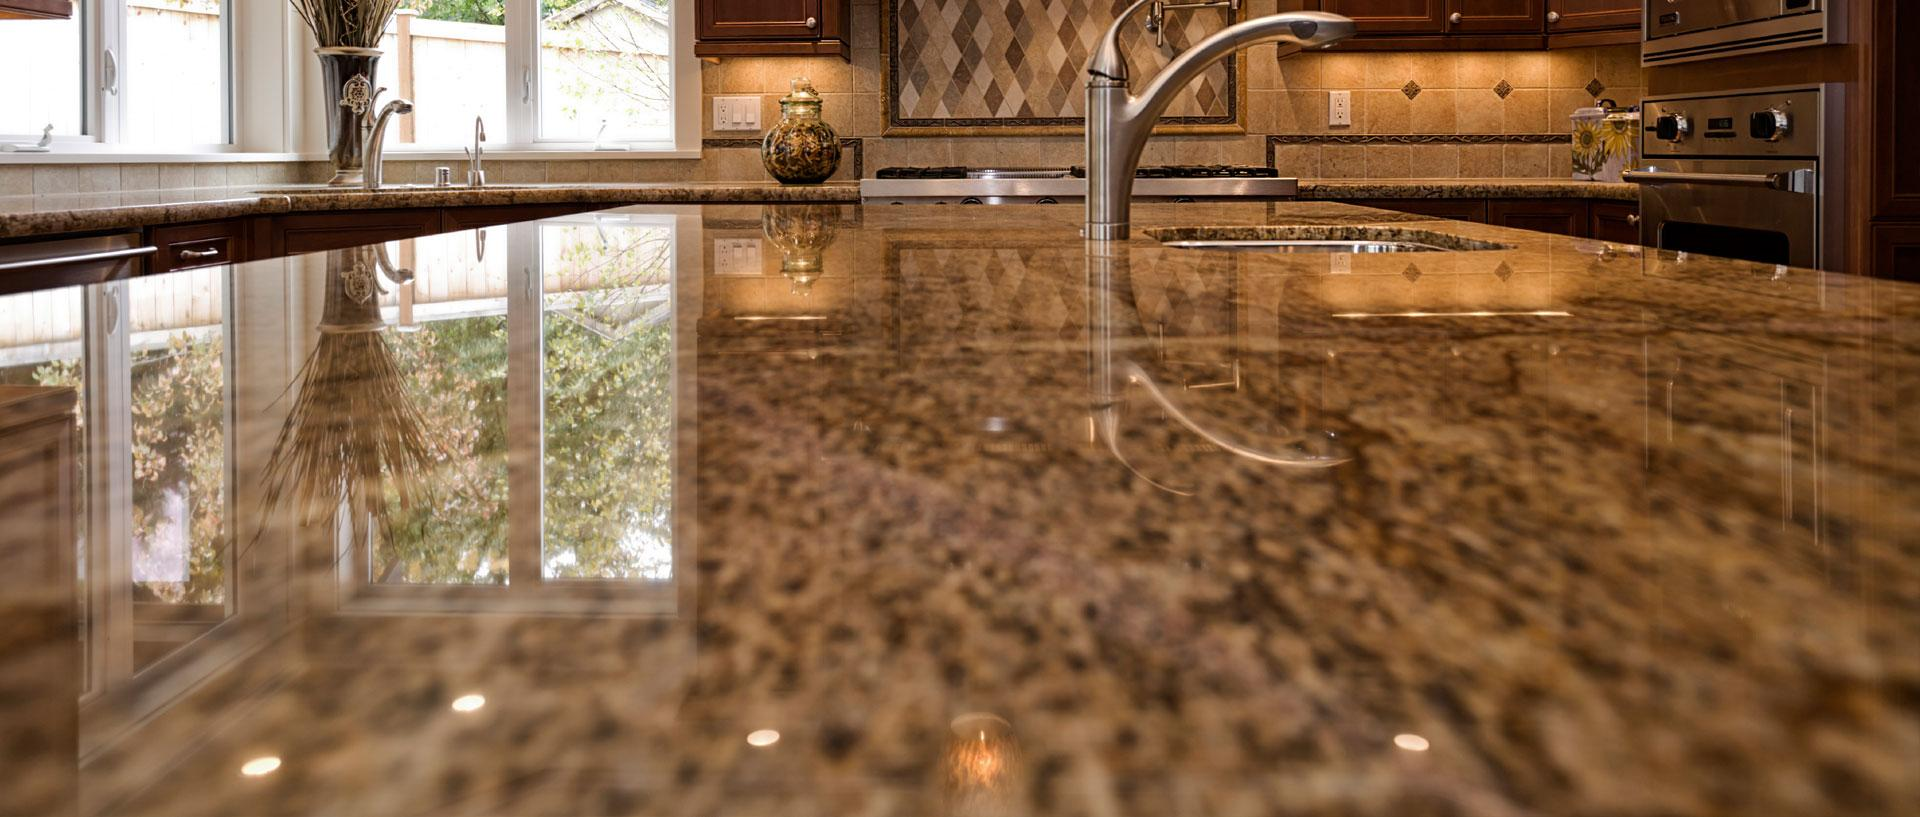 CR-Home-AH-Kitchen-Counter-10-15